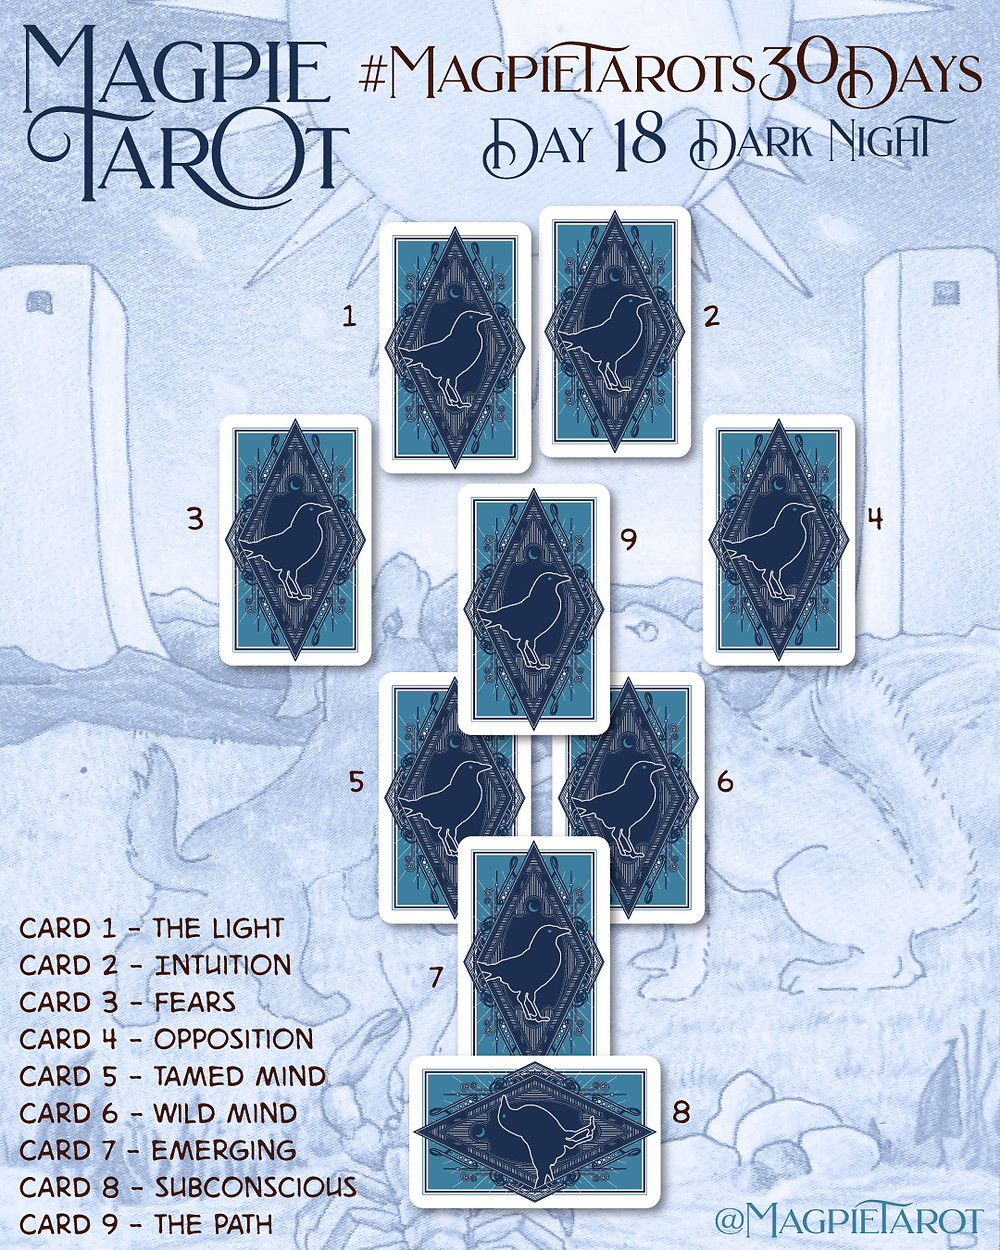 Day 18 of Magpie Tarot's 30 Days